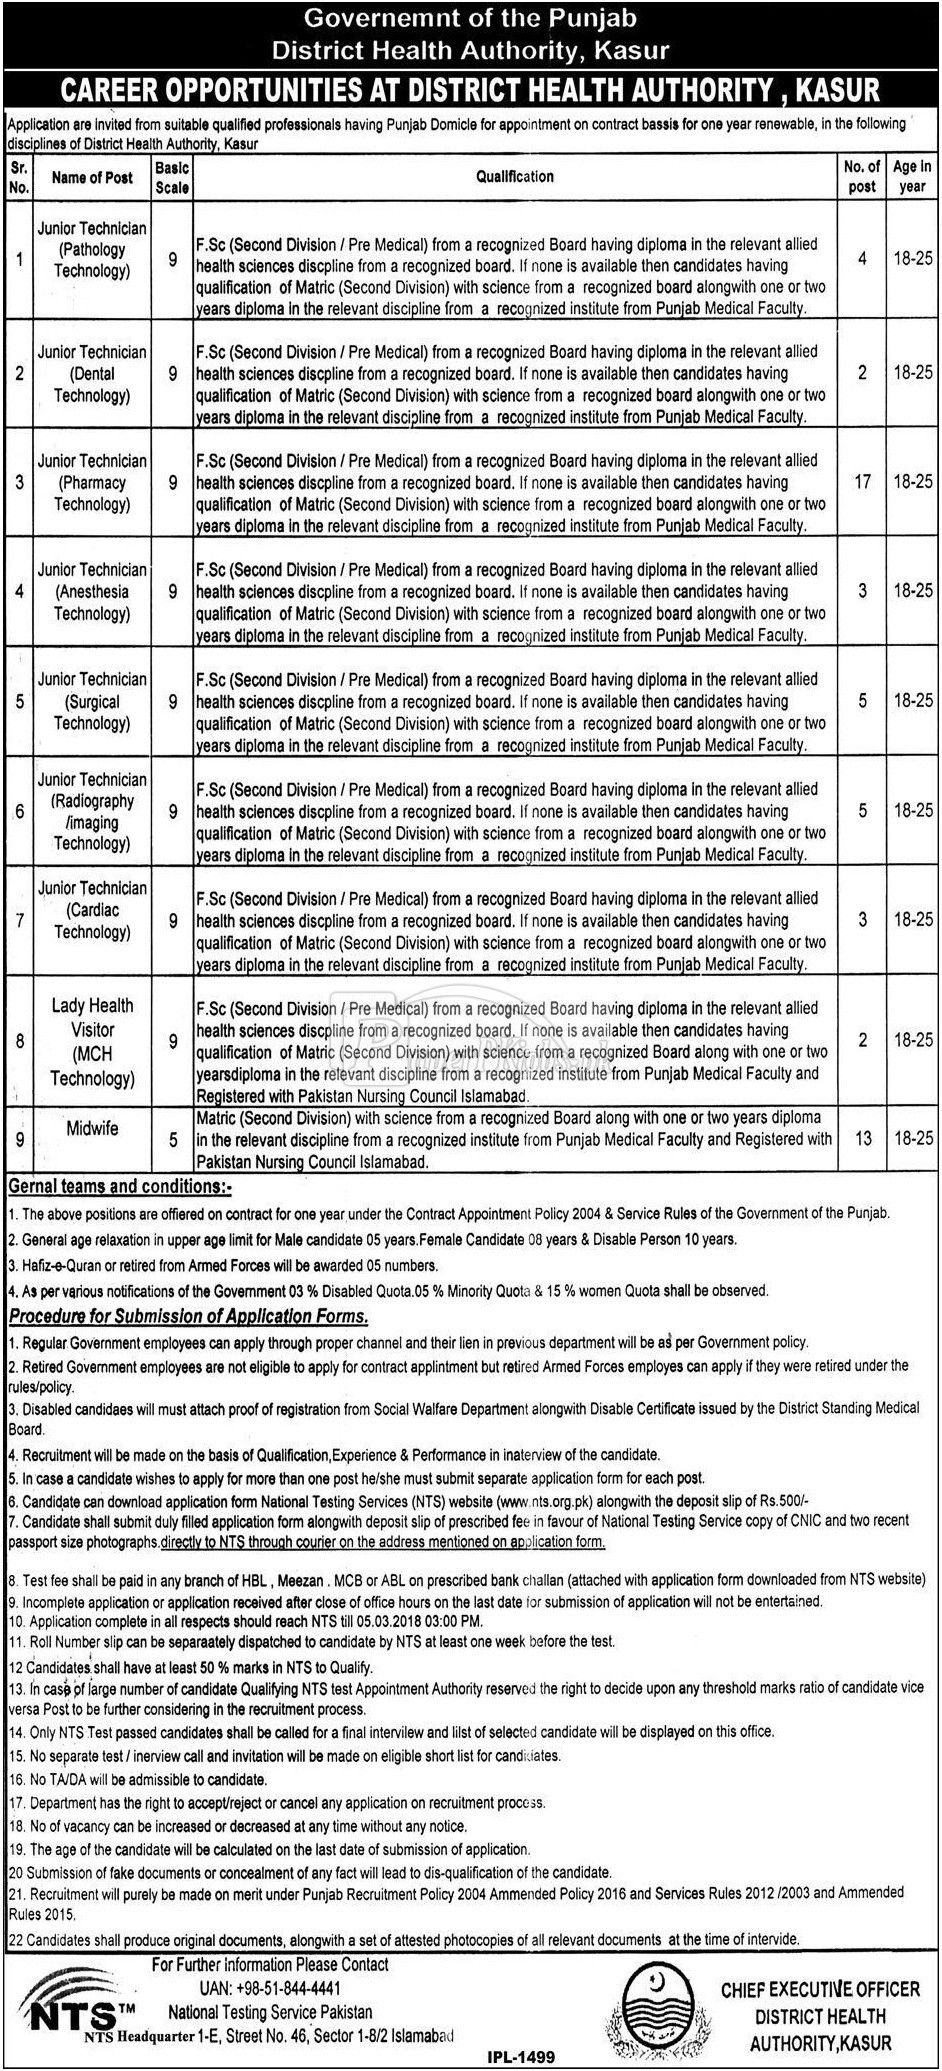 District Health Authority Kasur NTS Jobs 2018